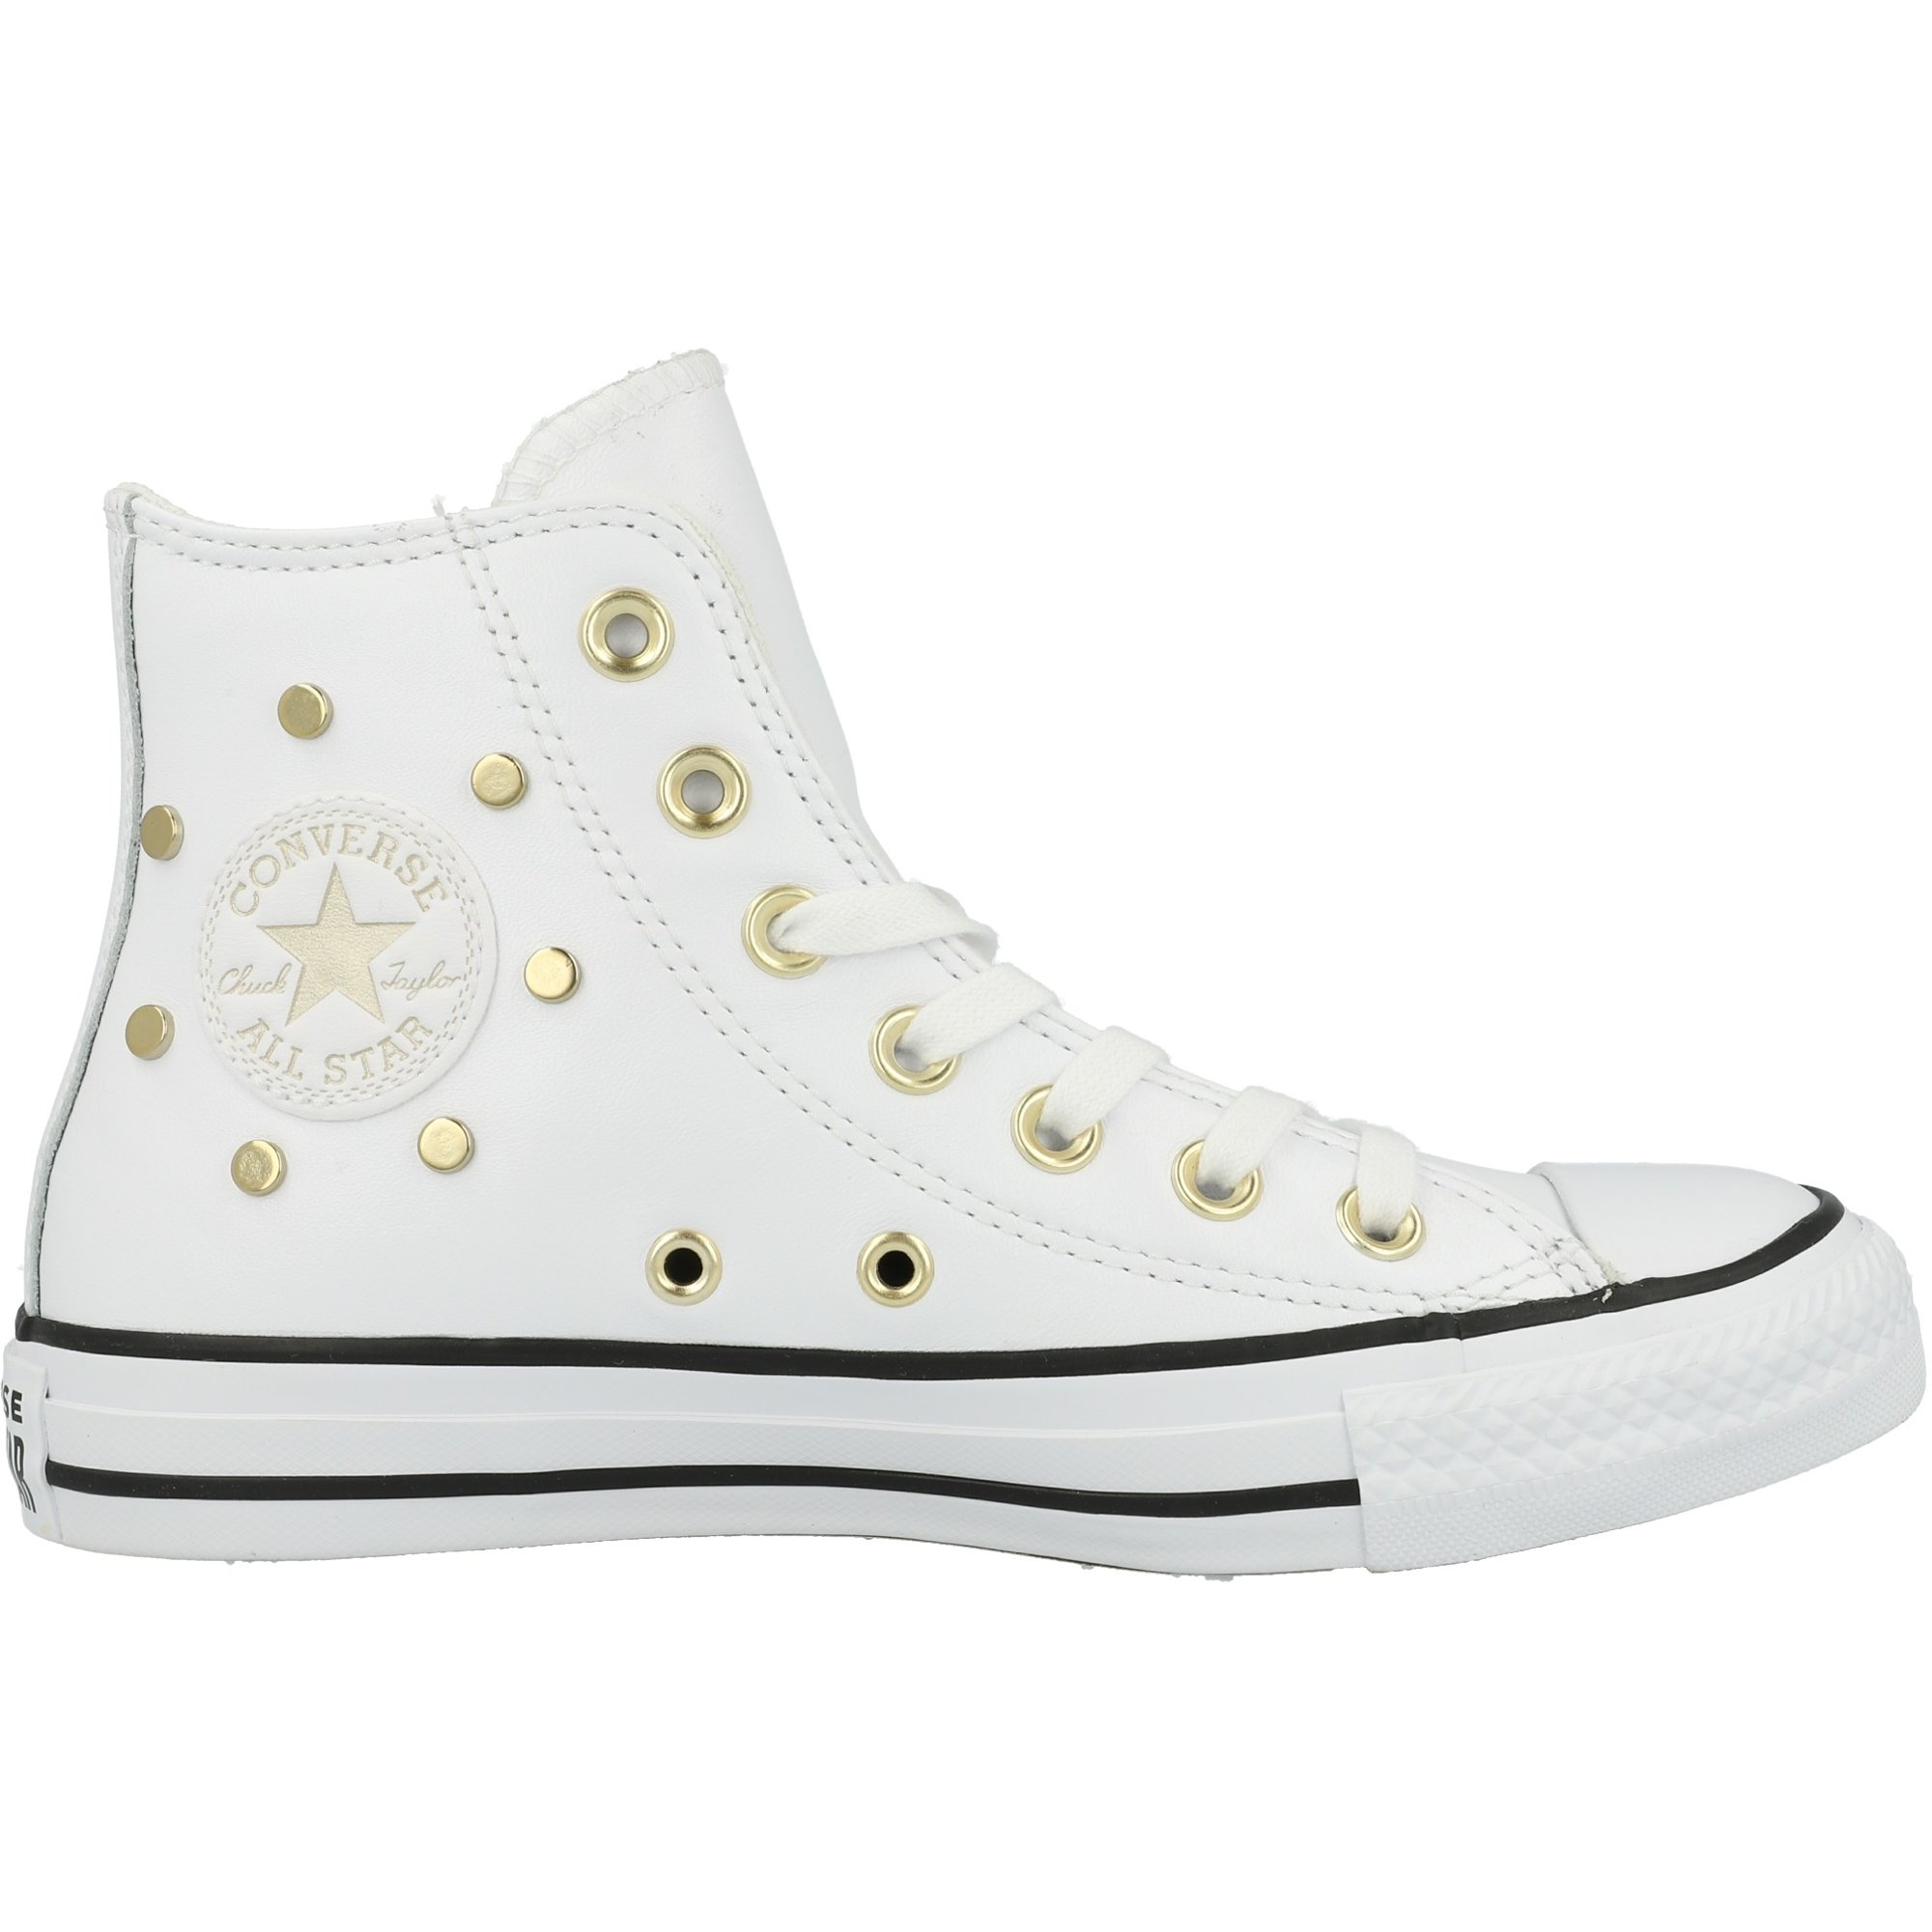 Converse Chuck Taylor All Star Hi Leather Studs White/Black Leather